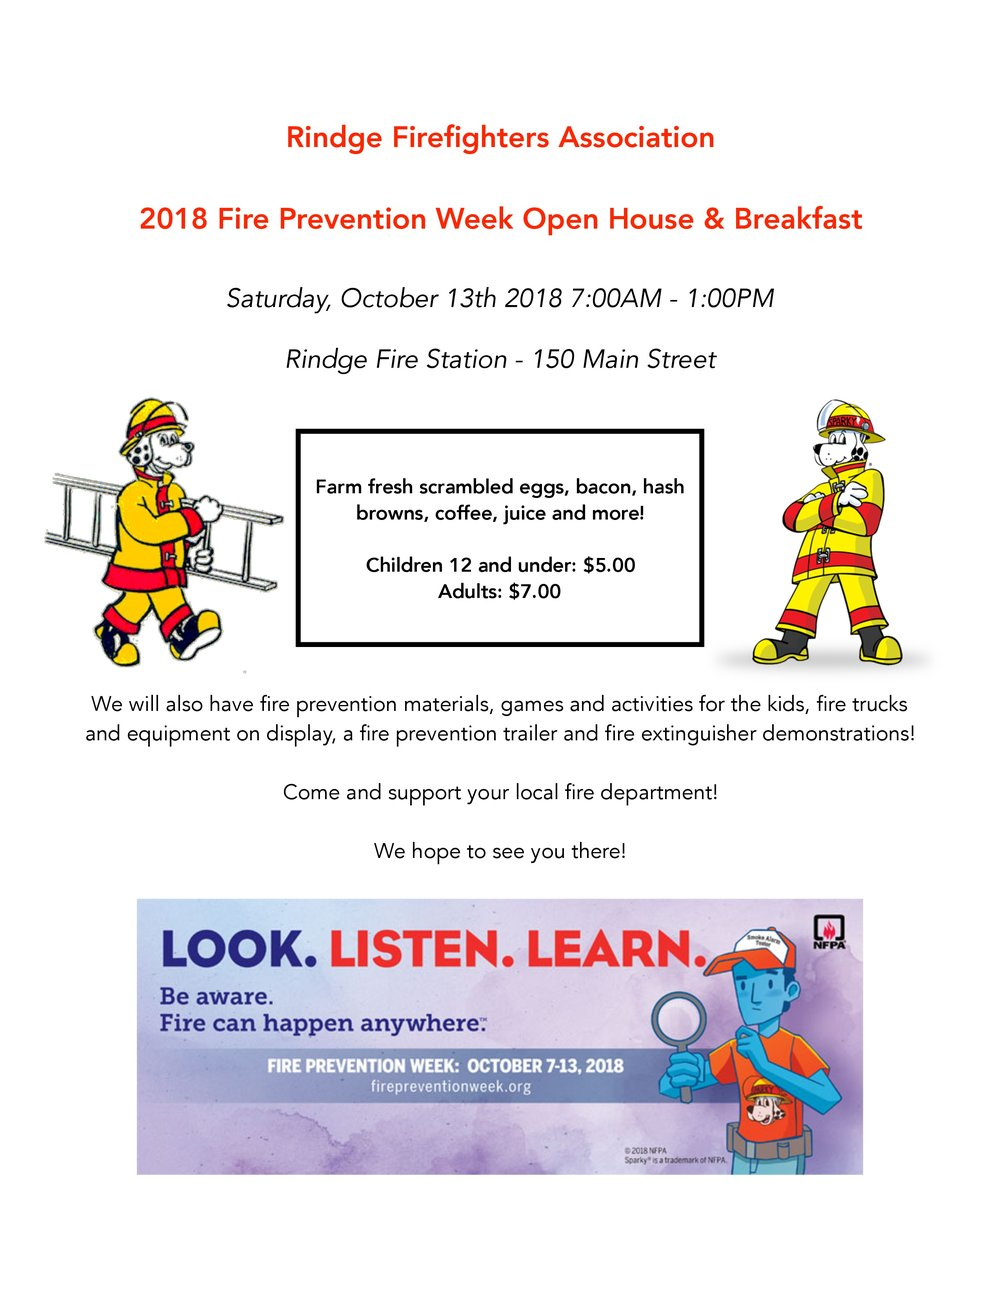 RFD FPW Open House 2018-page-0.jpg